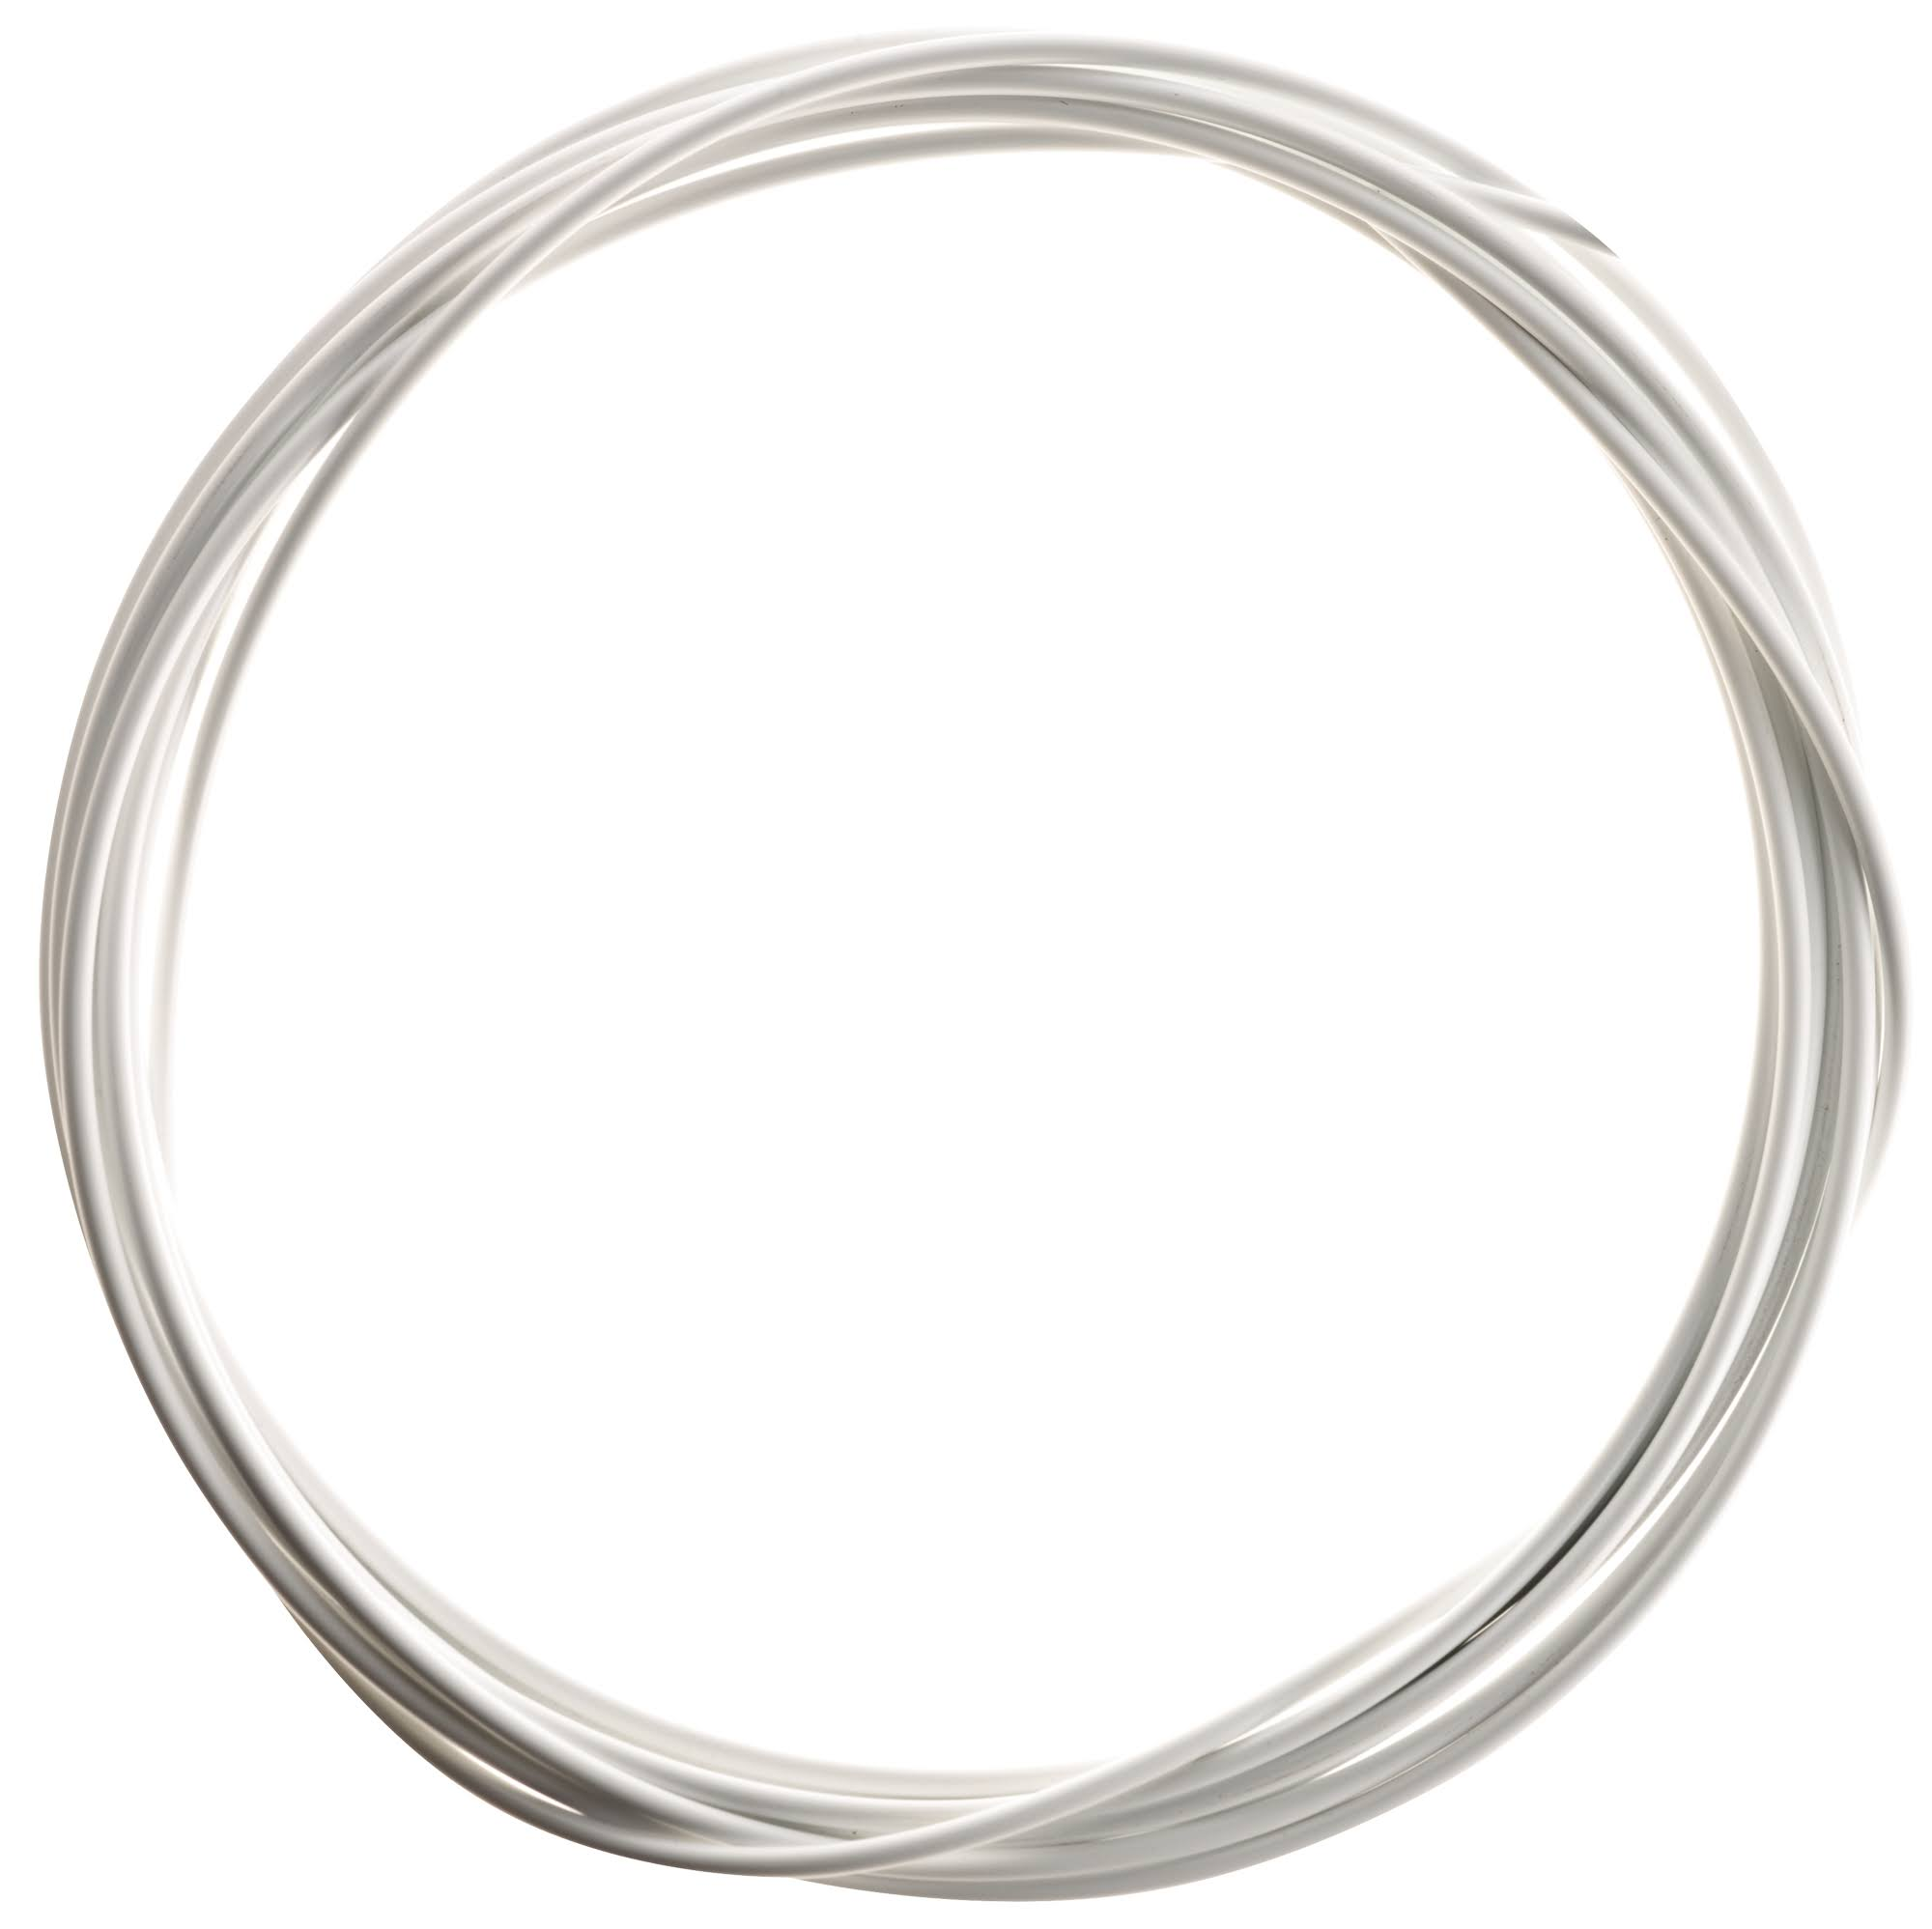 Bontrager Project One Gear Cable Outer Housing Colour: White